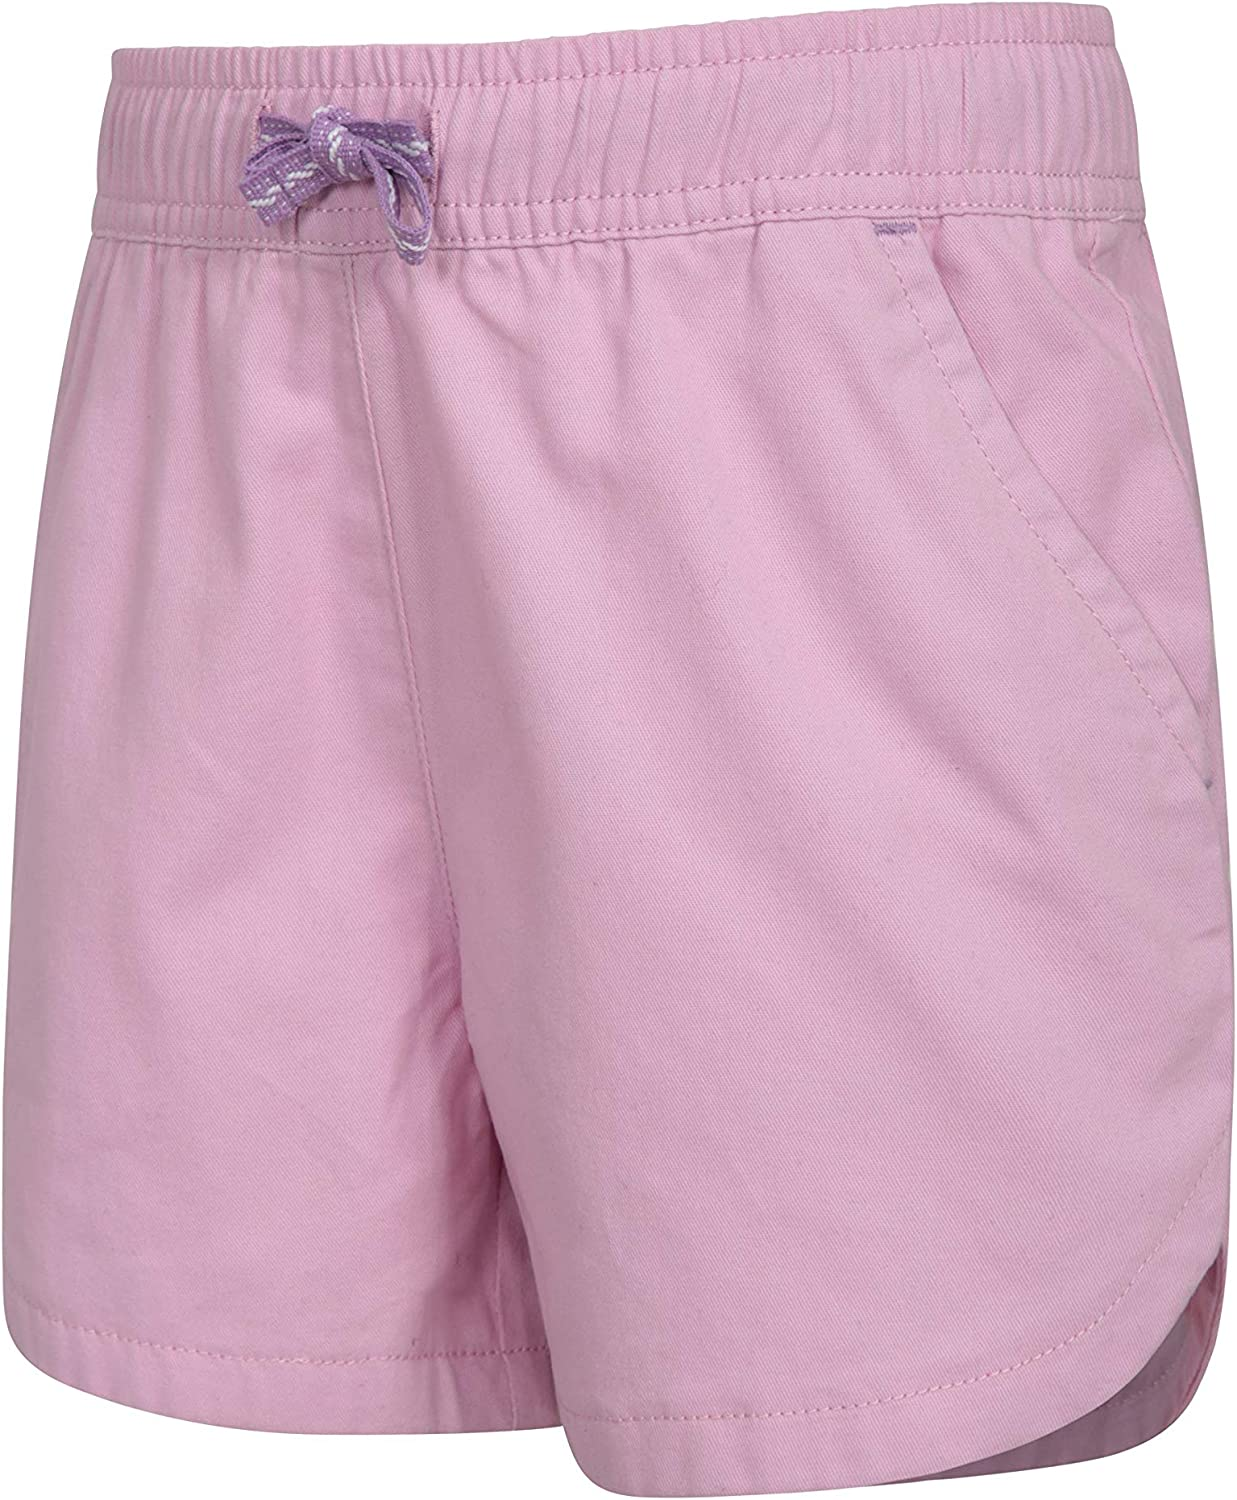 Cotton Kids Shorts Summer Hot Pants Mountain Warehouse Waterfall Girls Shorts Easy Care Short Pants Ideal Casual Clothes When Travelling Breathable Holiday Shorts